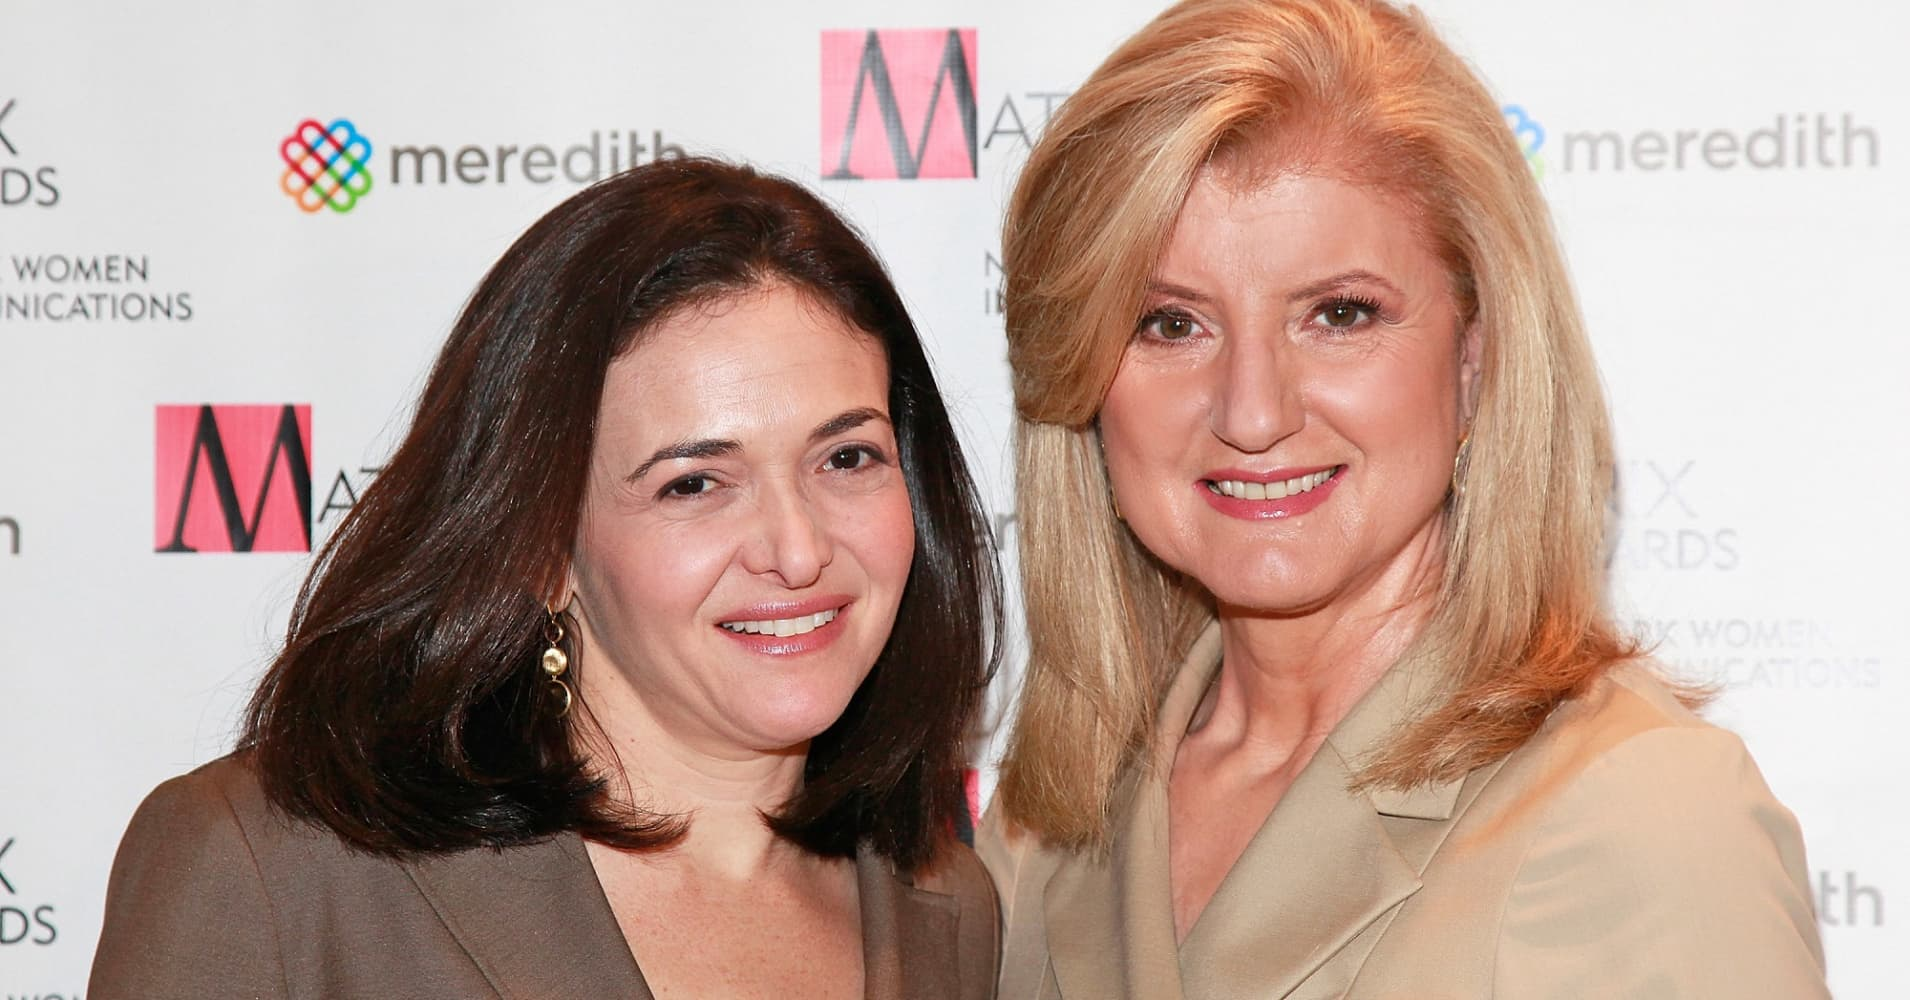 Facebook COO Sheryl Sandberg and Huffington Post Editor-In-Chief, Arianna Huffington attend the 2011 Matrix Awards.